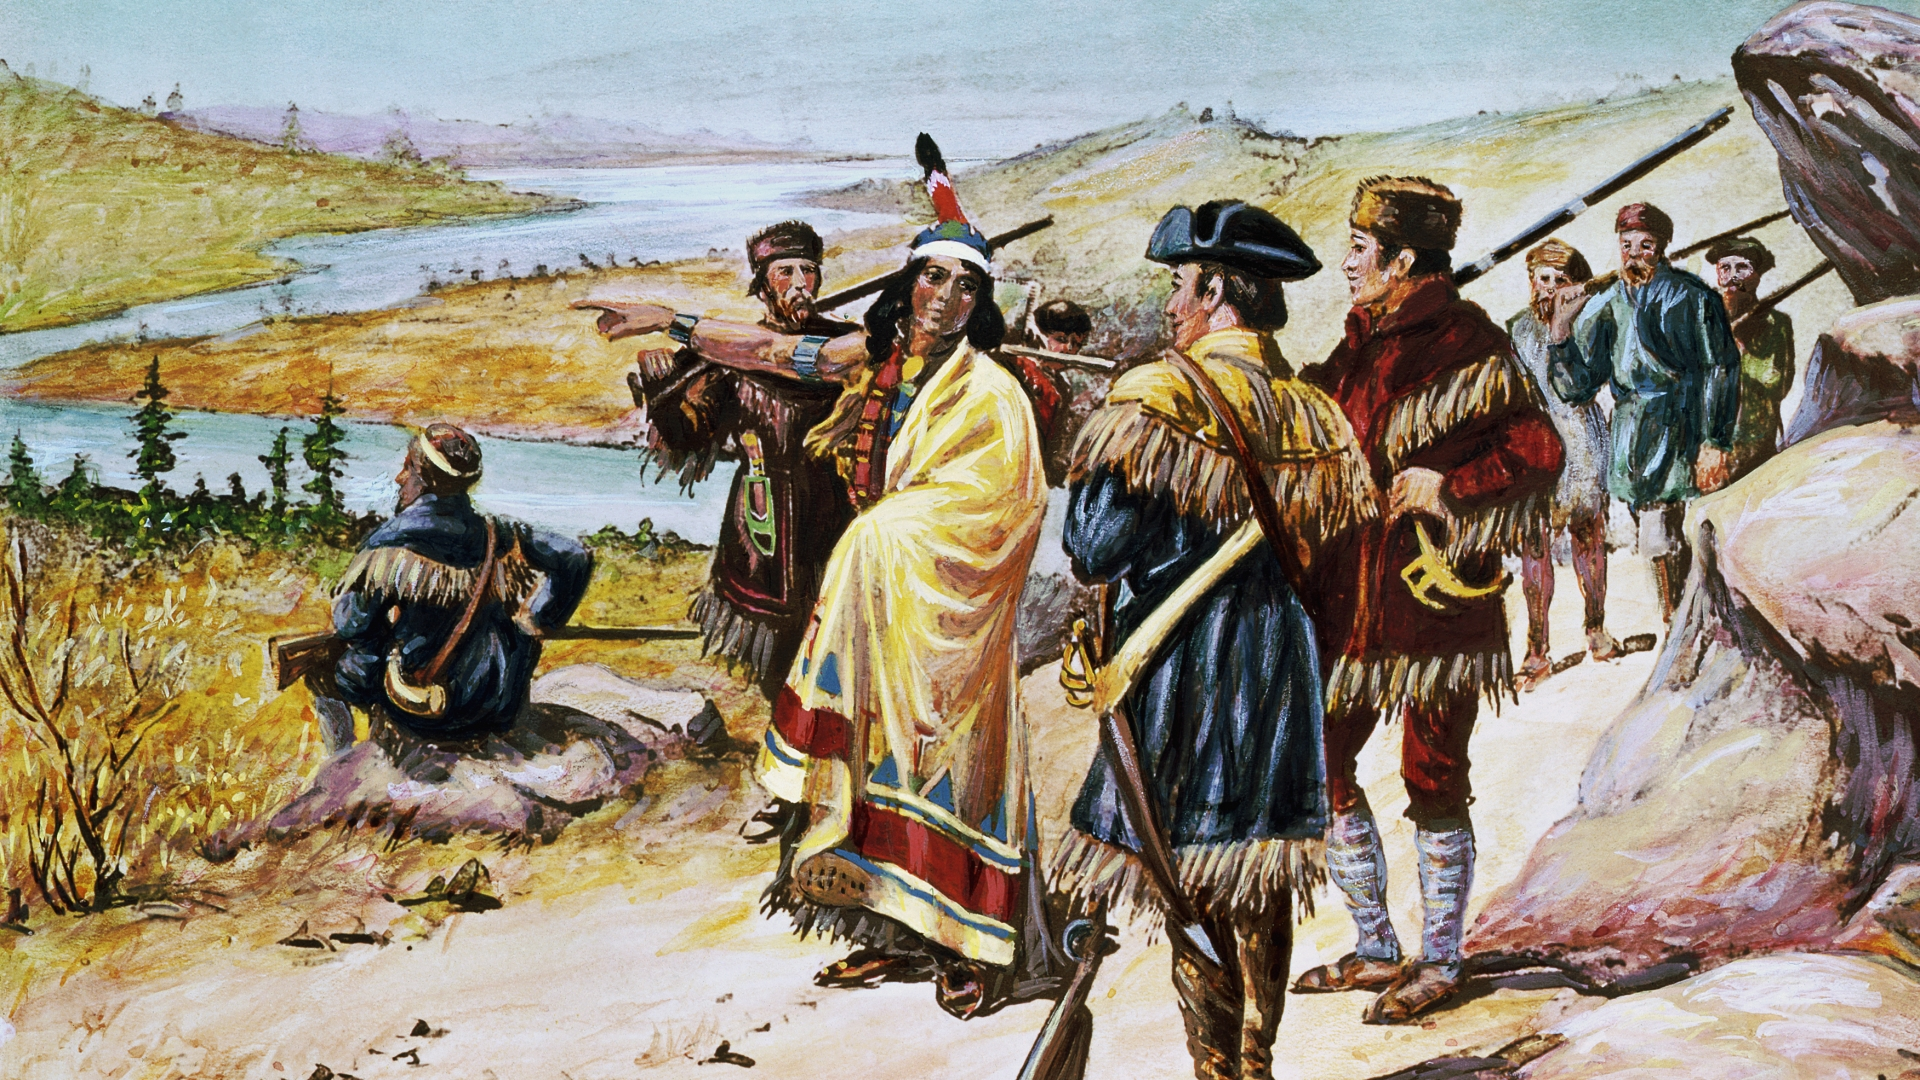 Sacajawea guiding Lewis and Clark from Mandan through the Rocky Mountains. (Credit: Bettmann Archives/Getty Images)